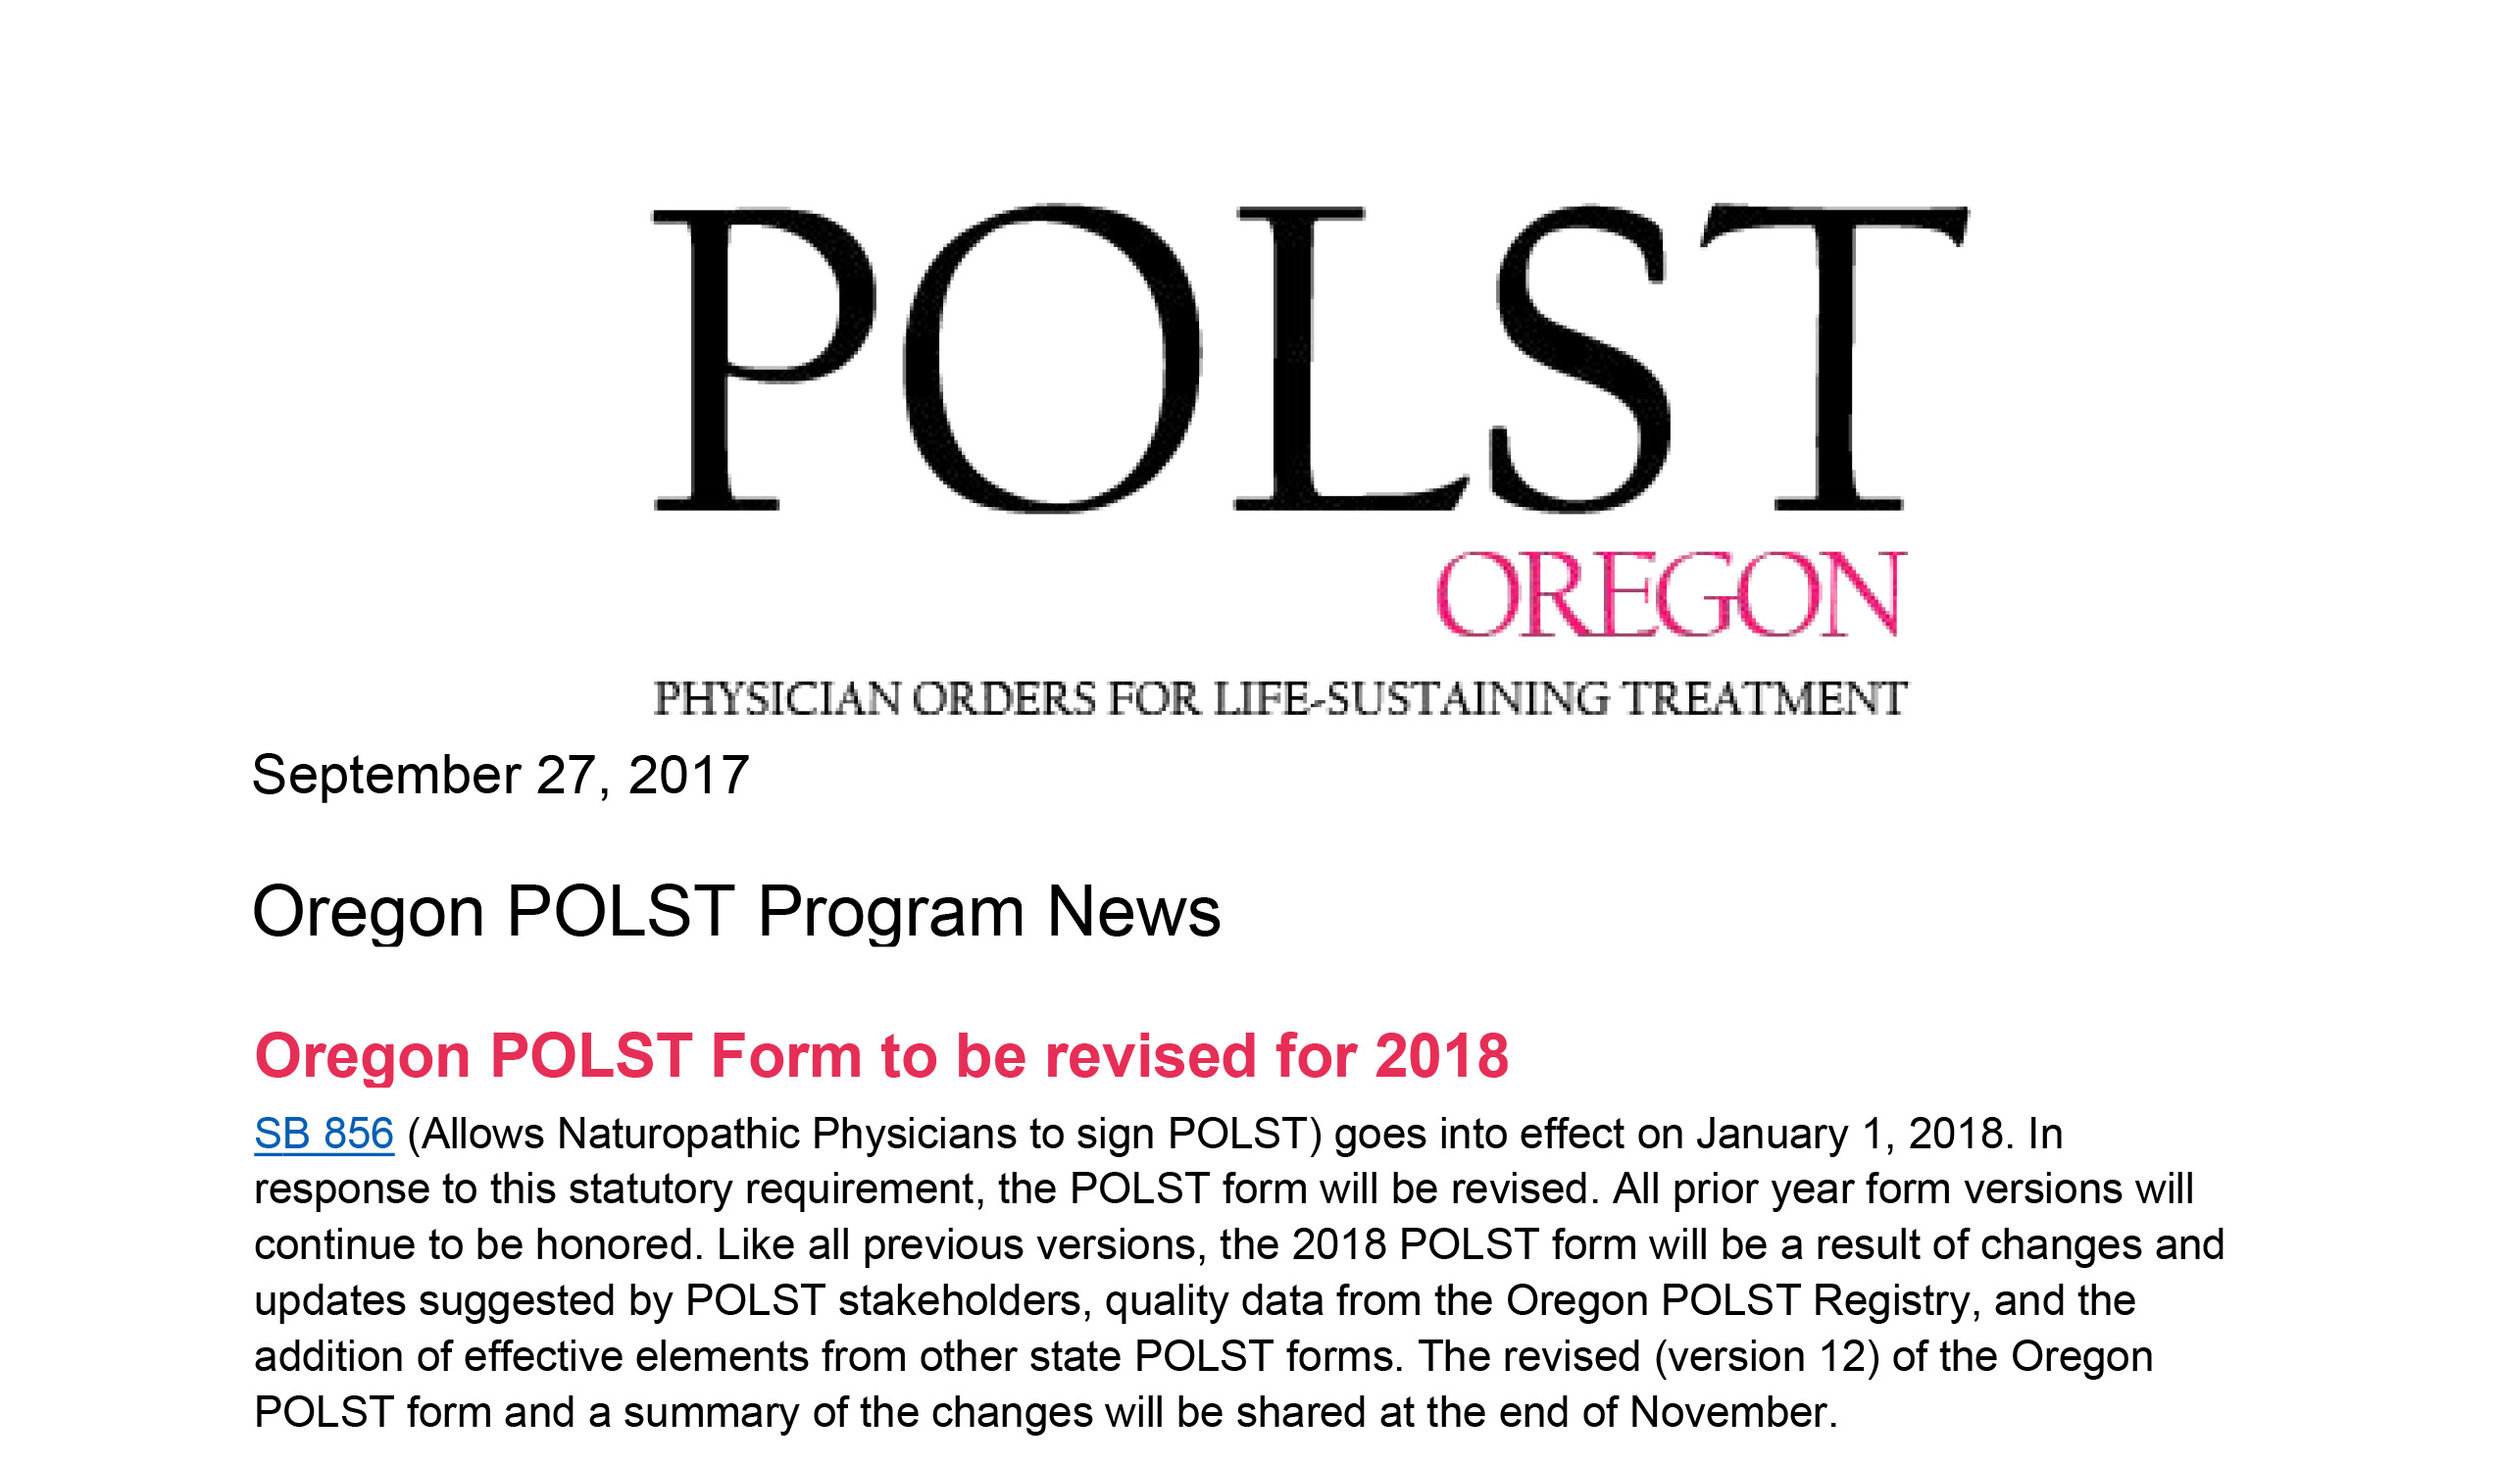 2017.09.27 Oregon POLST Program News for Web.jpg